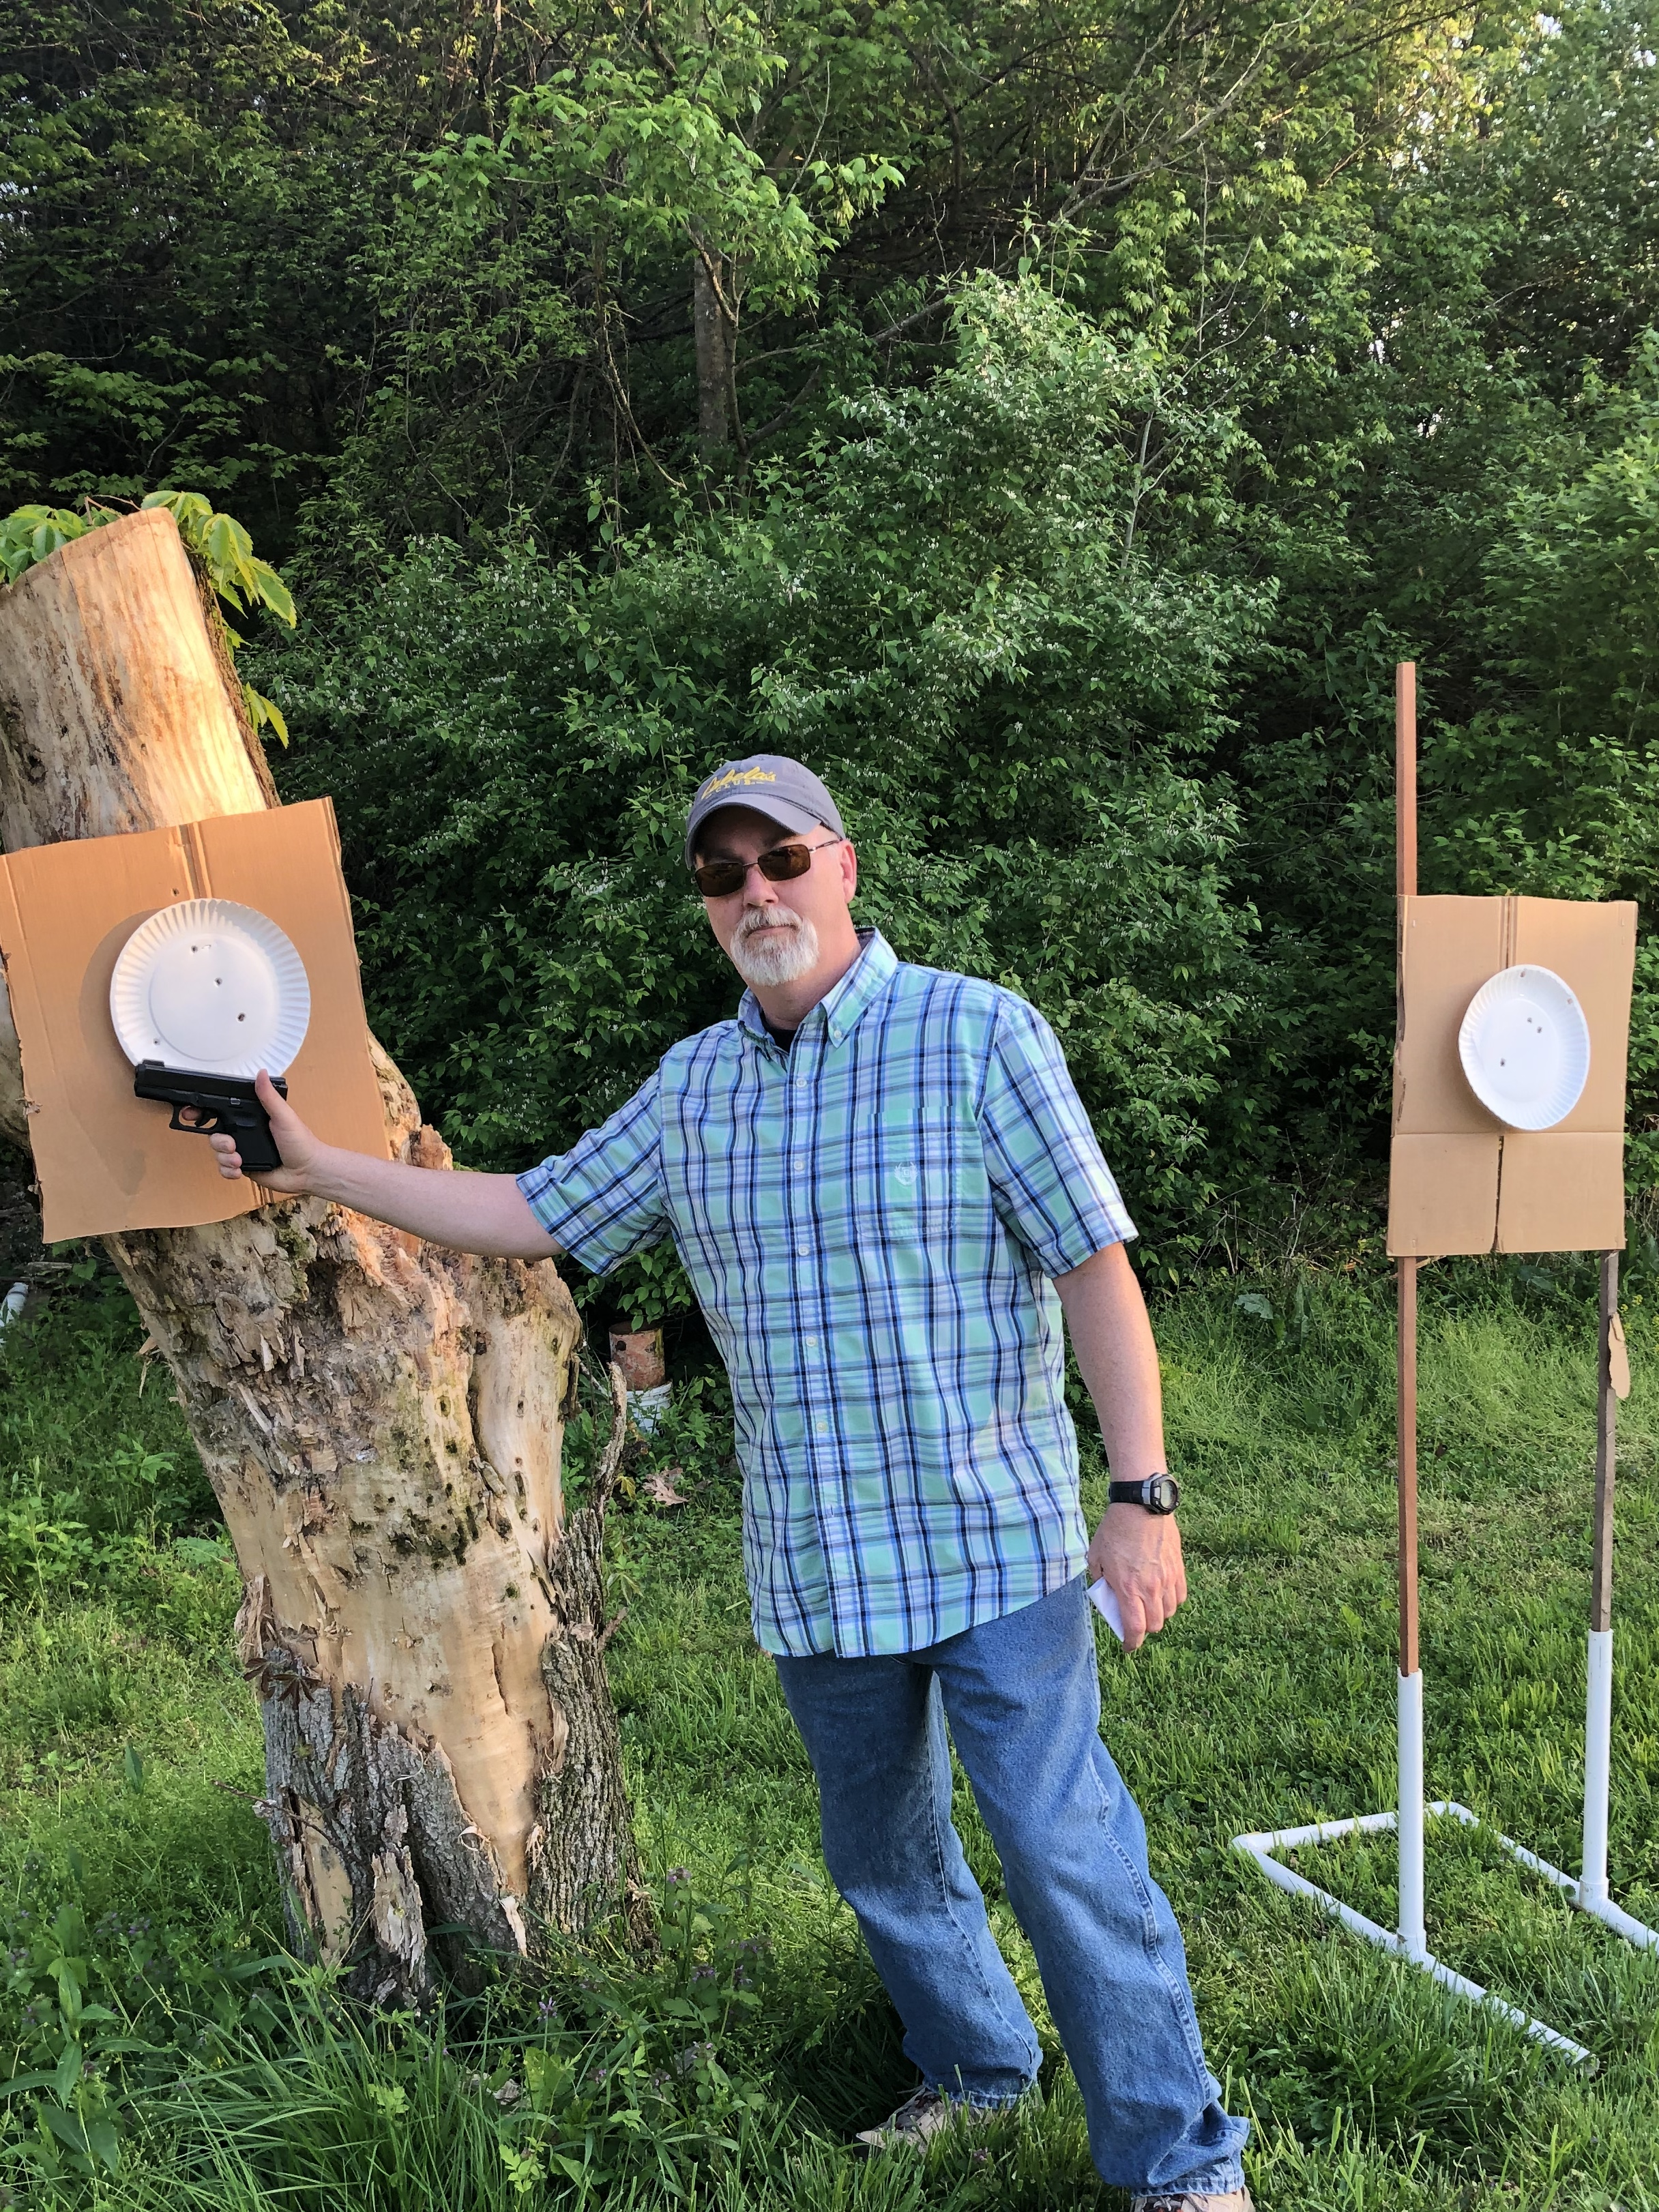 Draw practice from concealed at 12 feet, 2 threats, front sight focus-566f9ed6-4e2f-49d2-acaa-ffd2f9b20091.jpeg